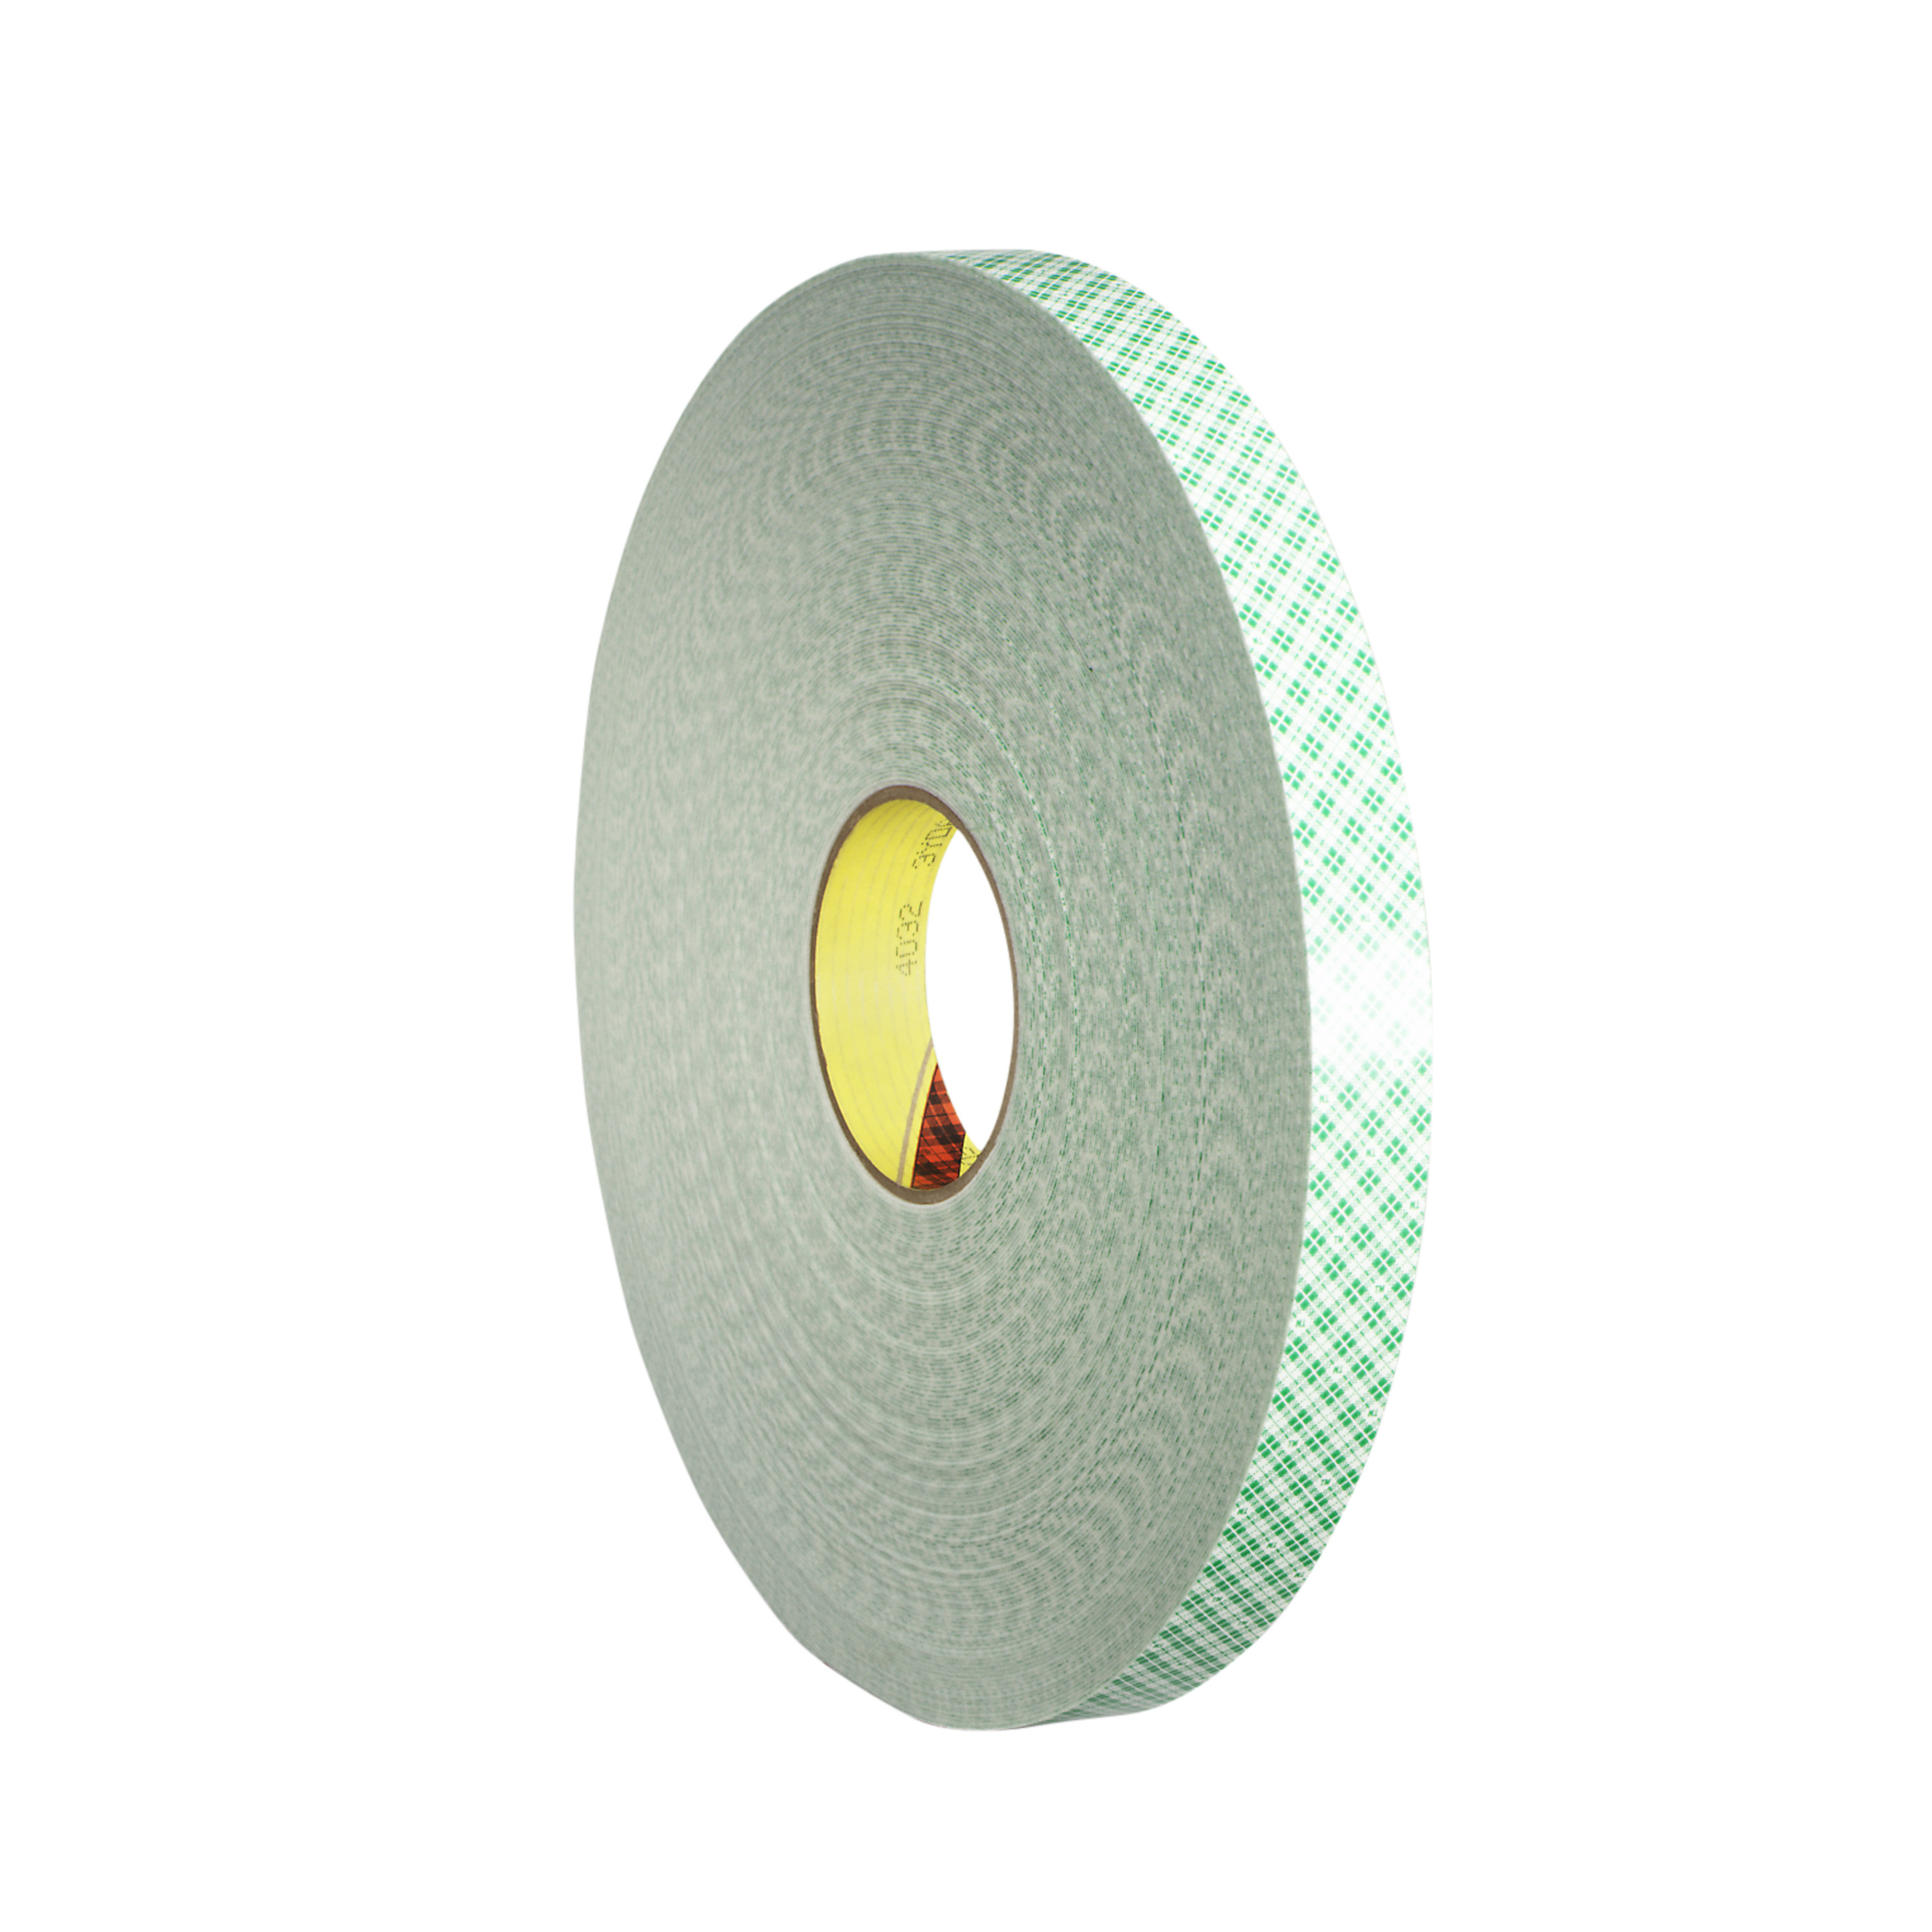 3M™ Double Coated Urethane Foam Tape 4032, Off White, 31 mil, Roll, Config